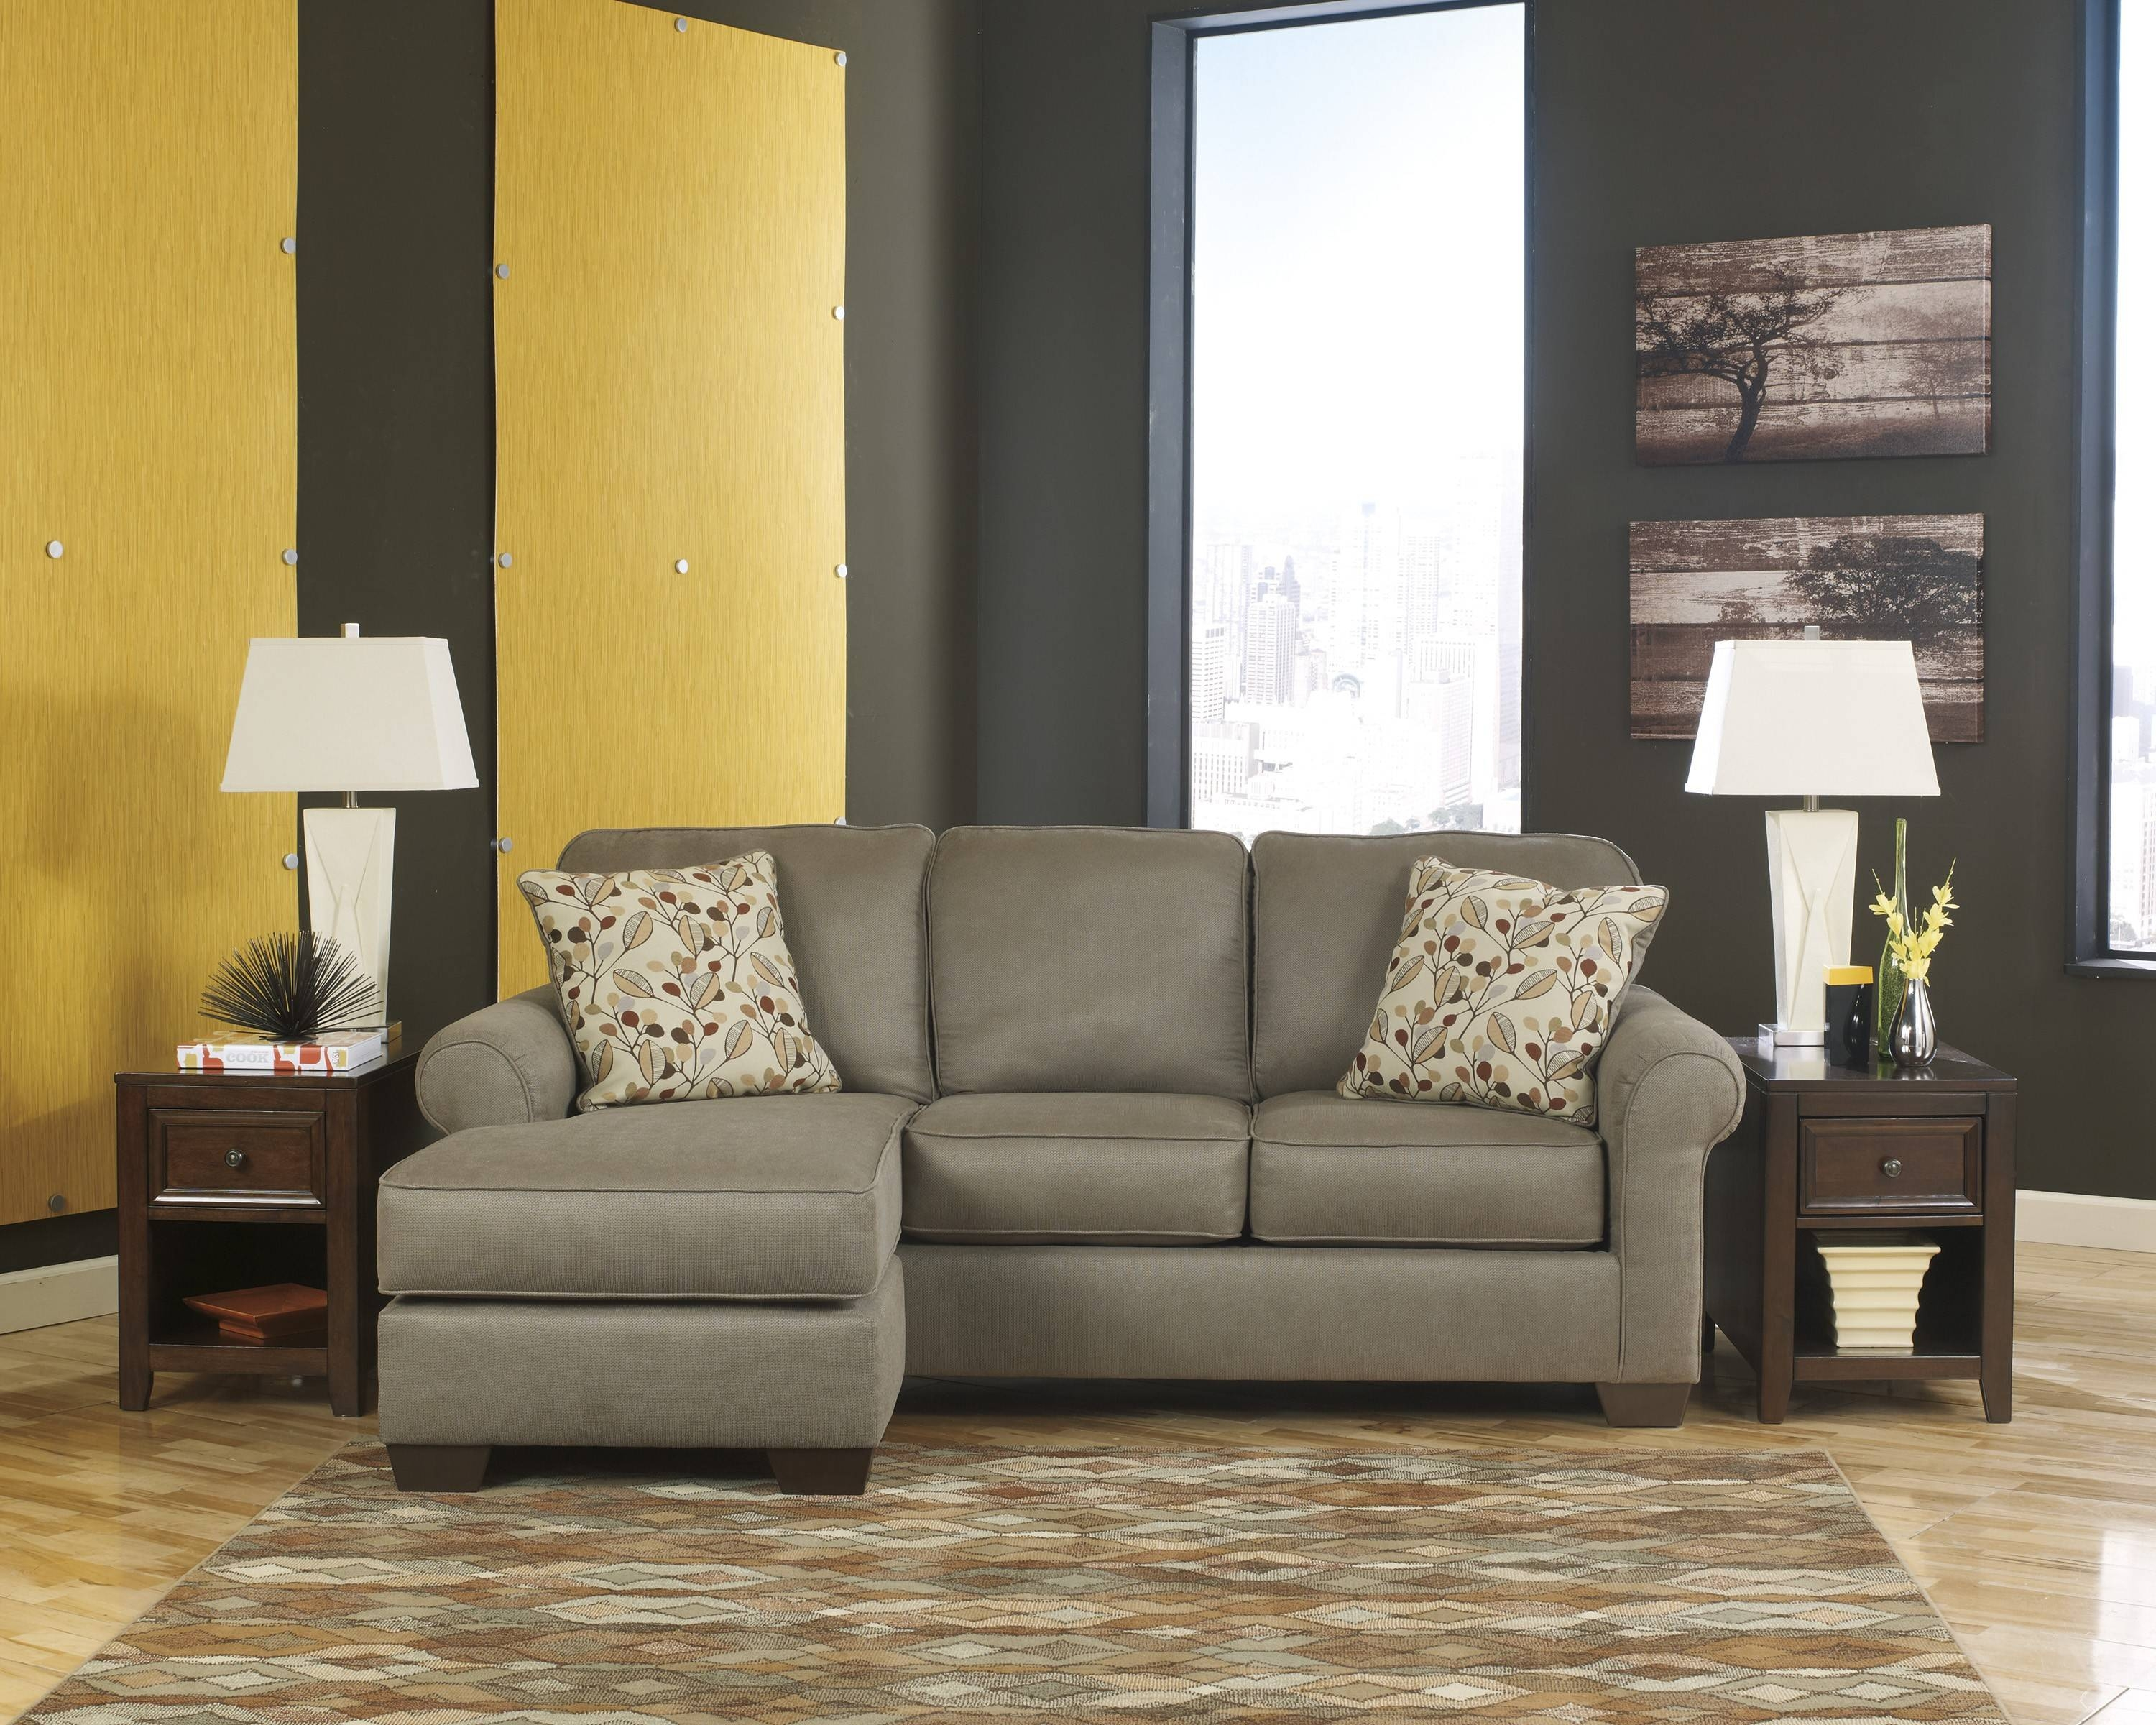 Decor: Fascinating Benchcraft Sofa With Luxury Shapes For Living for Berkline Sectional Sofa (Image 14 of 30)